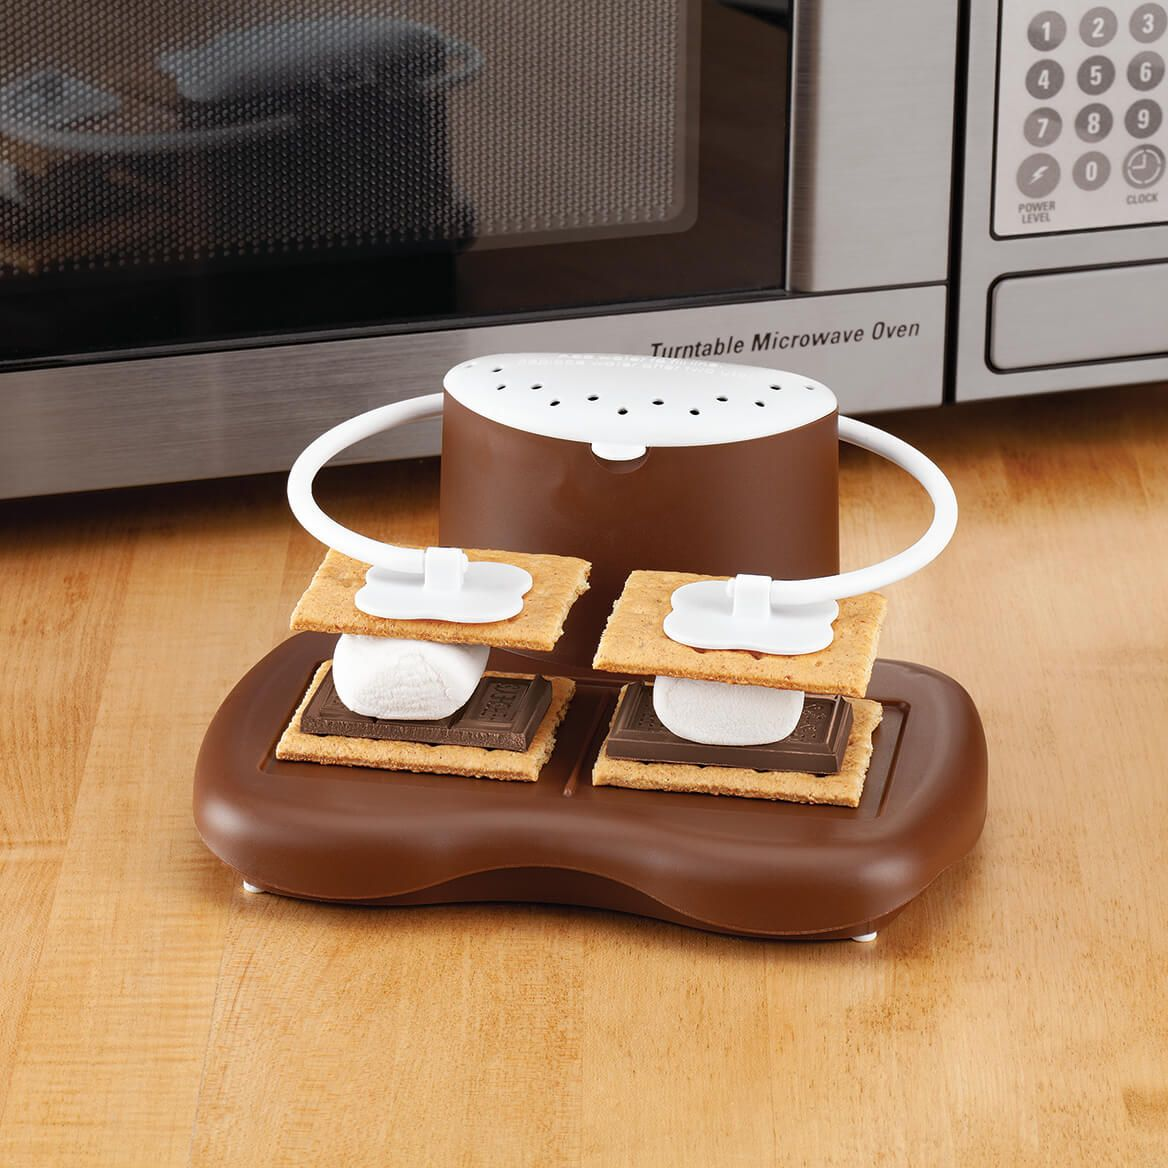 Microwave S'mores Maker-371275